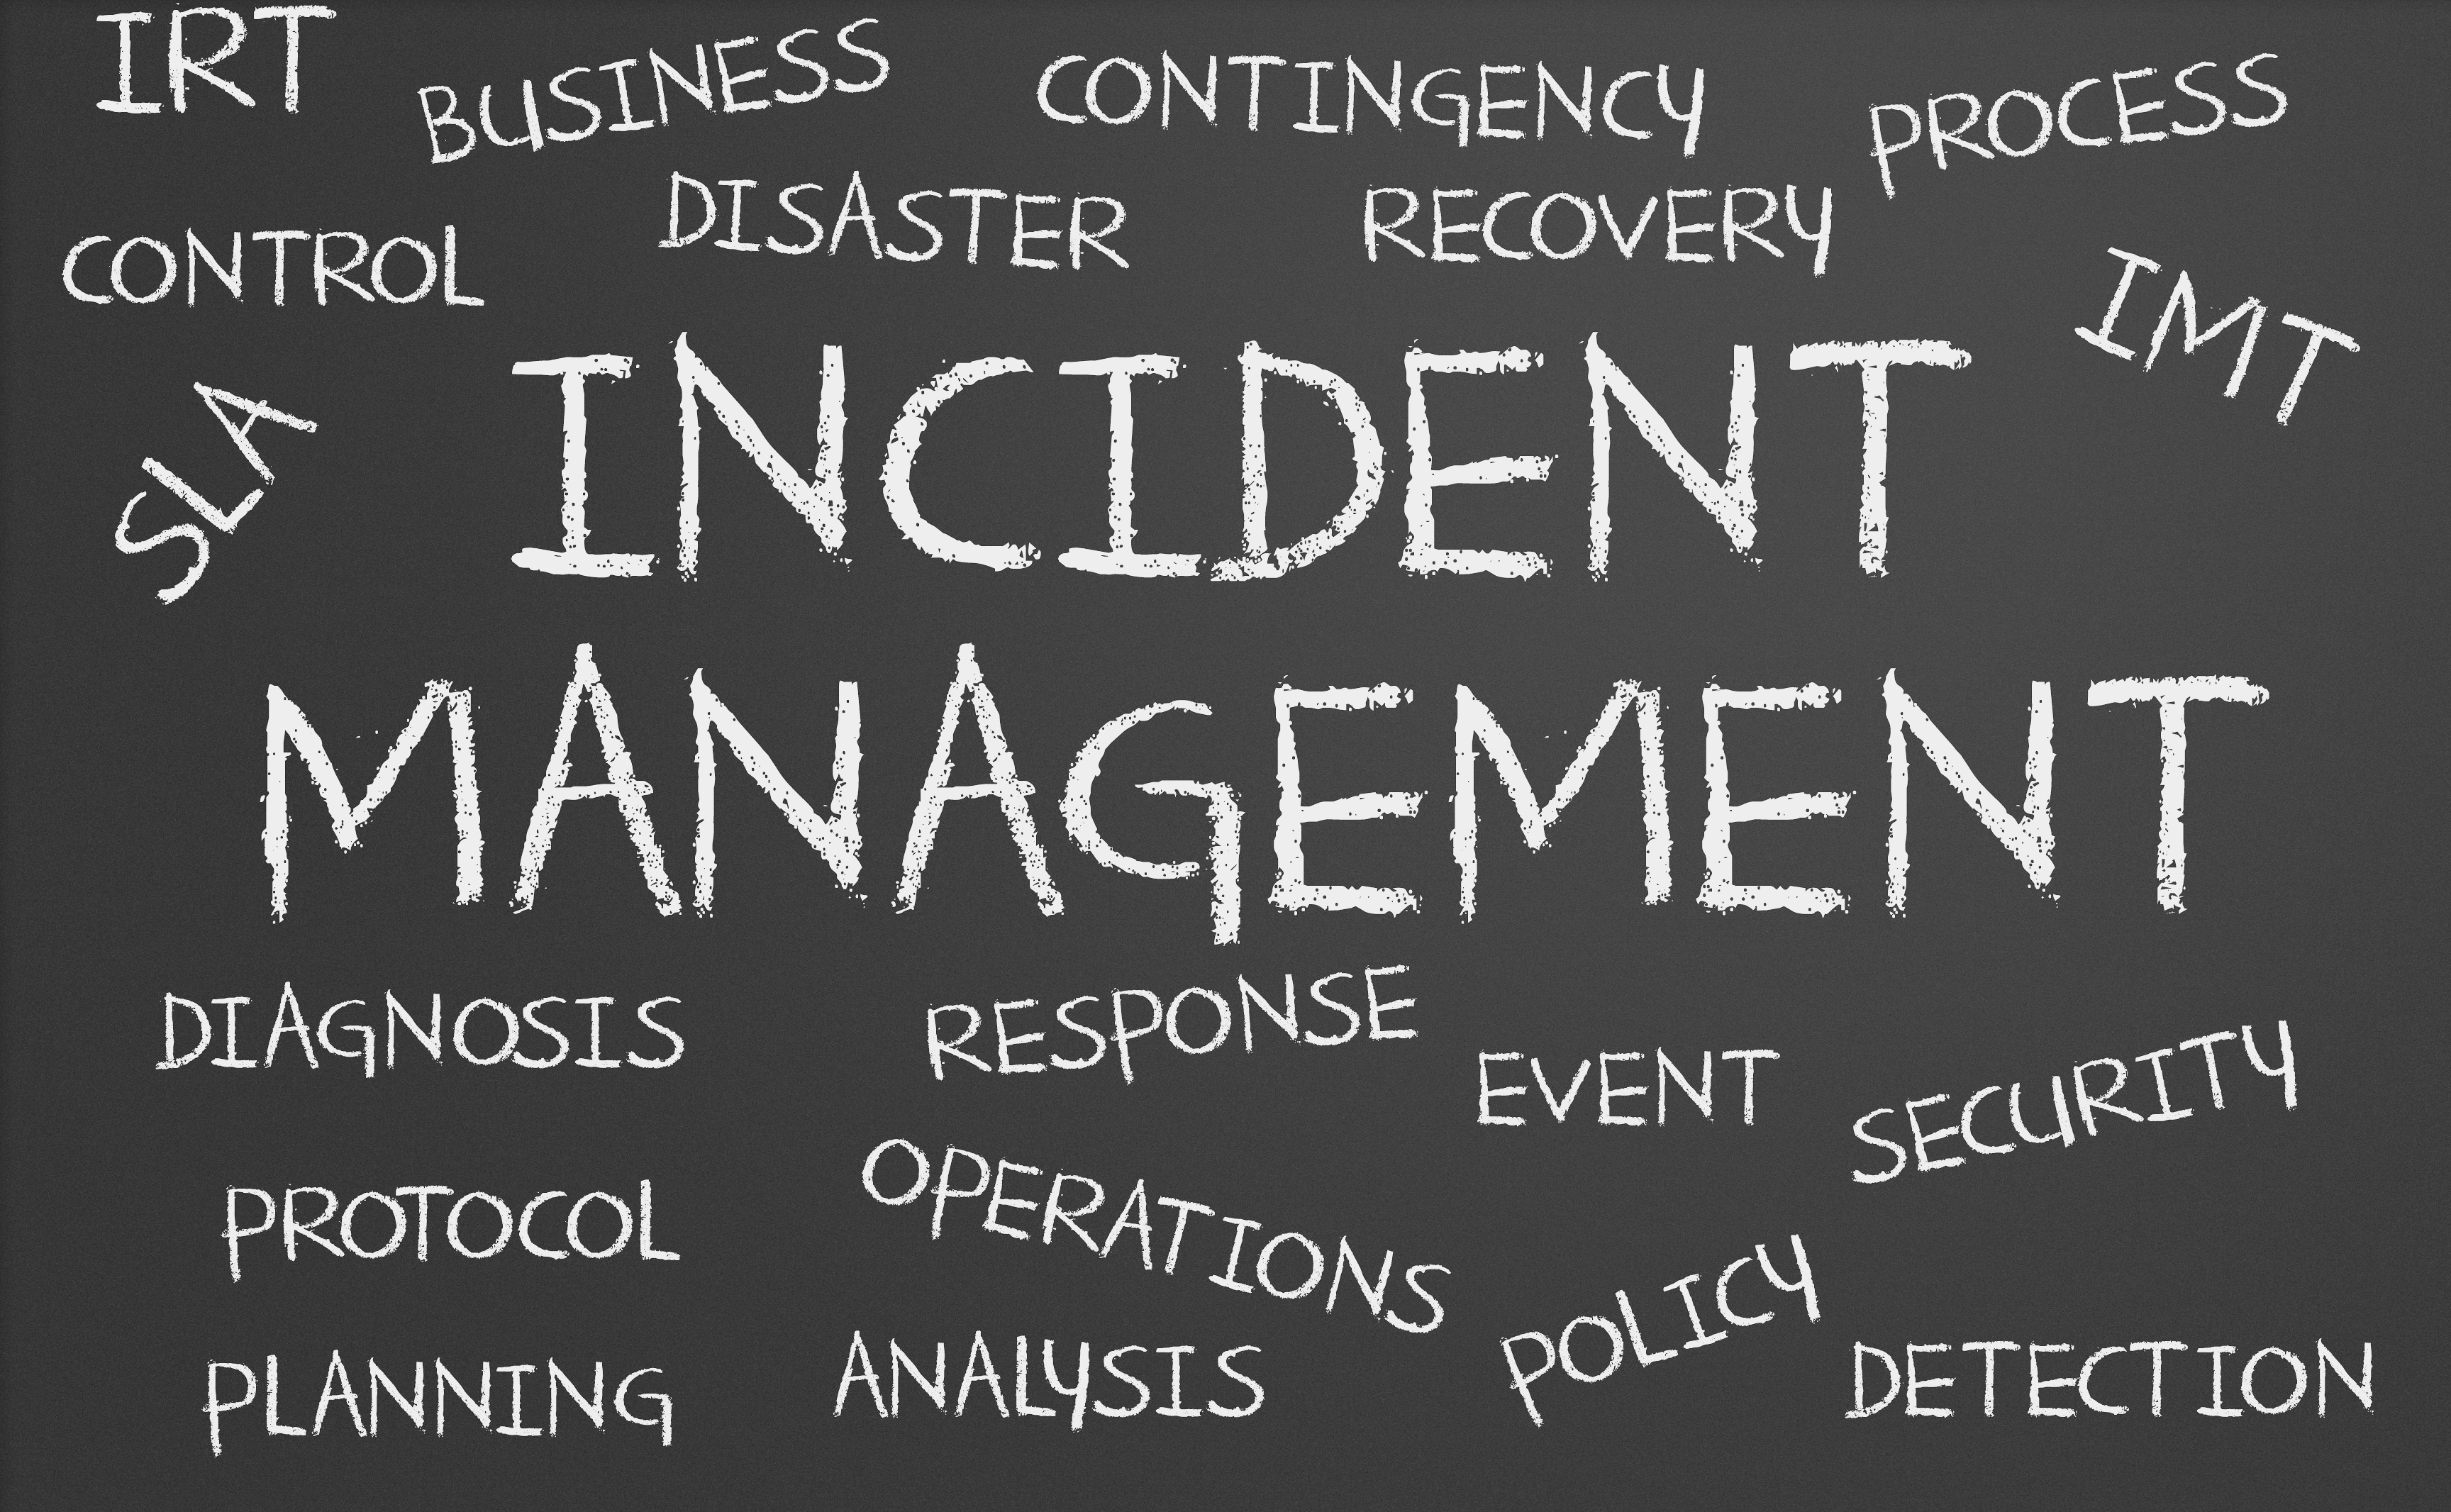 Incident Management istock image.jpg